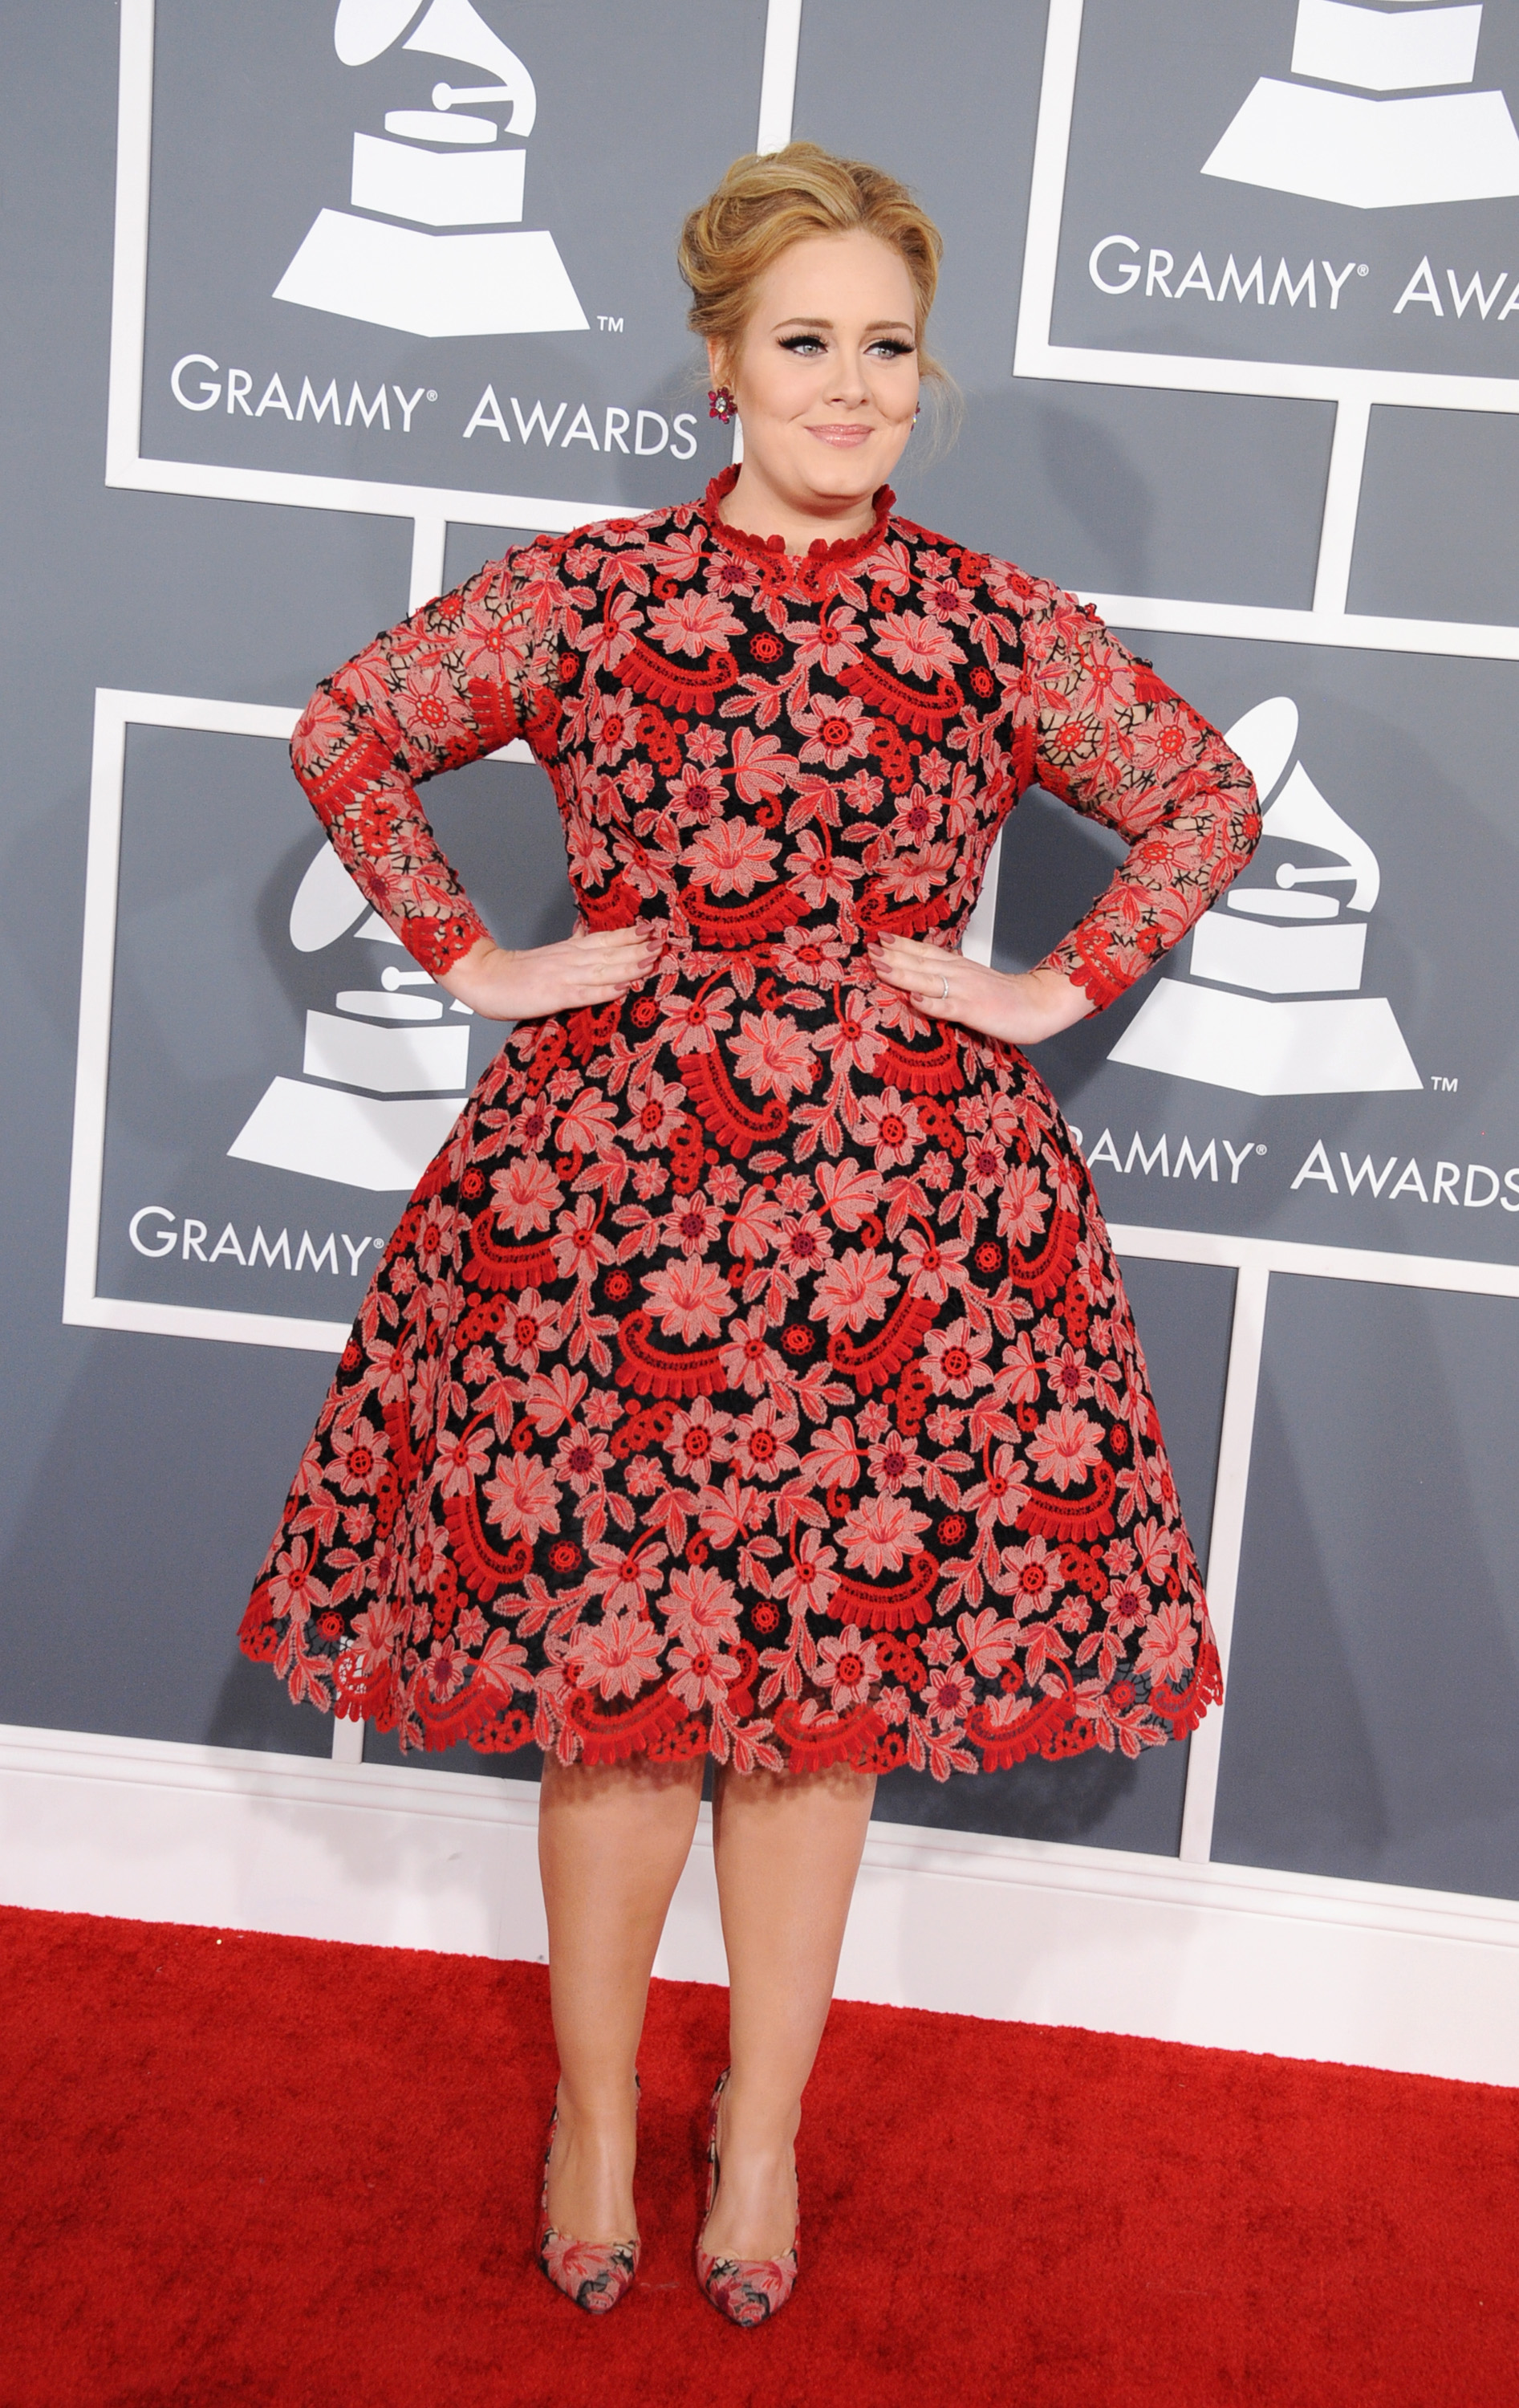 Adele opted for a red and pink Valentino dress.